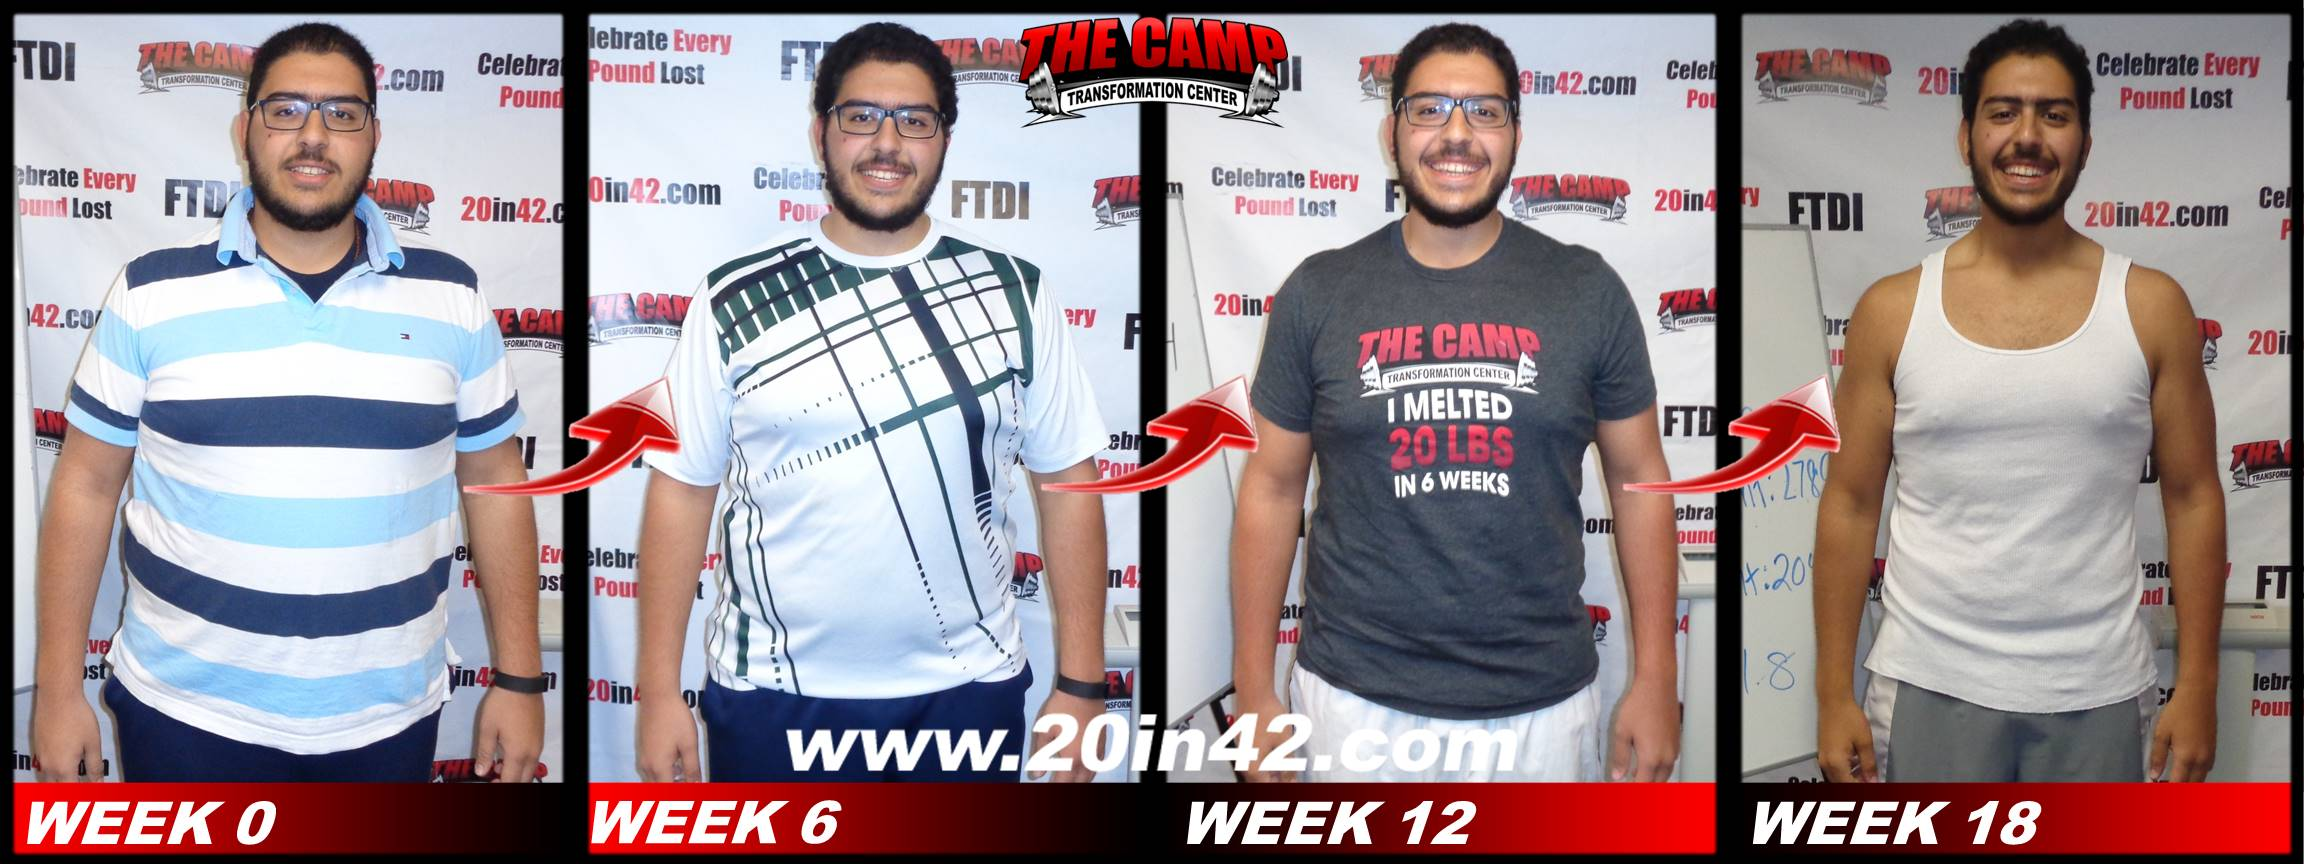 4 pictures of a man, facing front, showing his progress after week 6, week 12, and week 18 in the weight loss challenge program